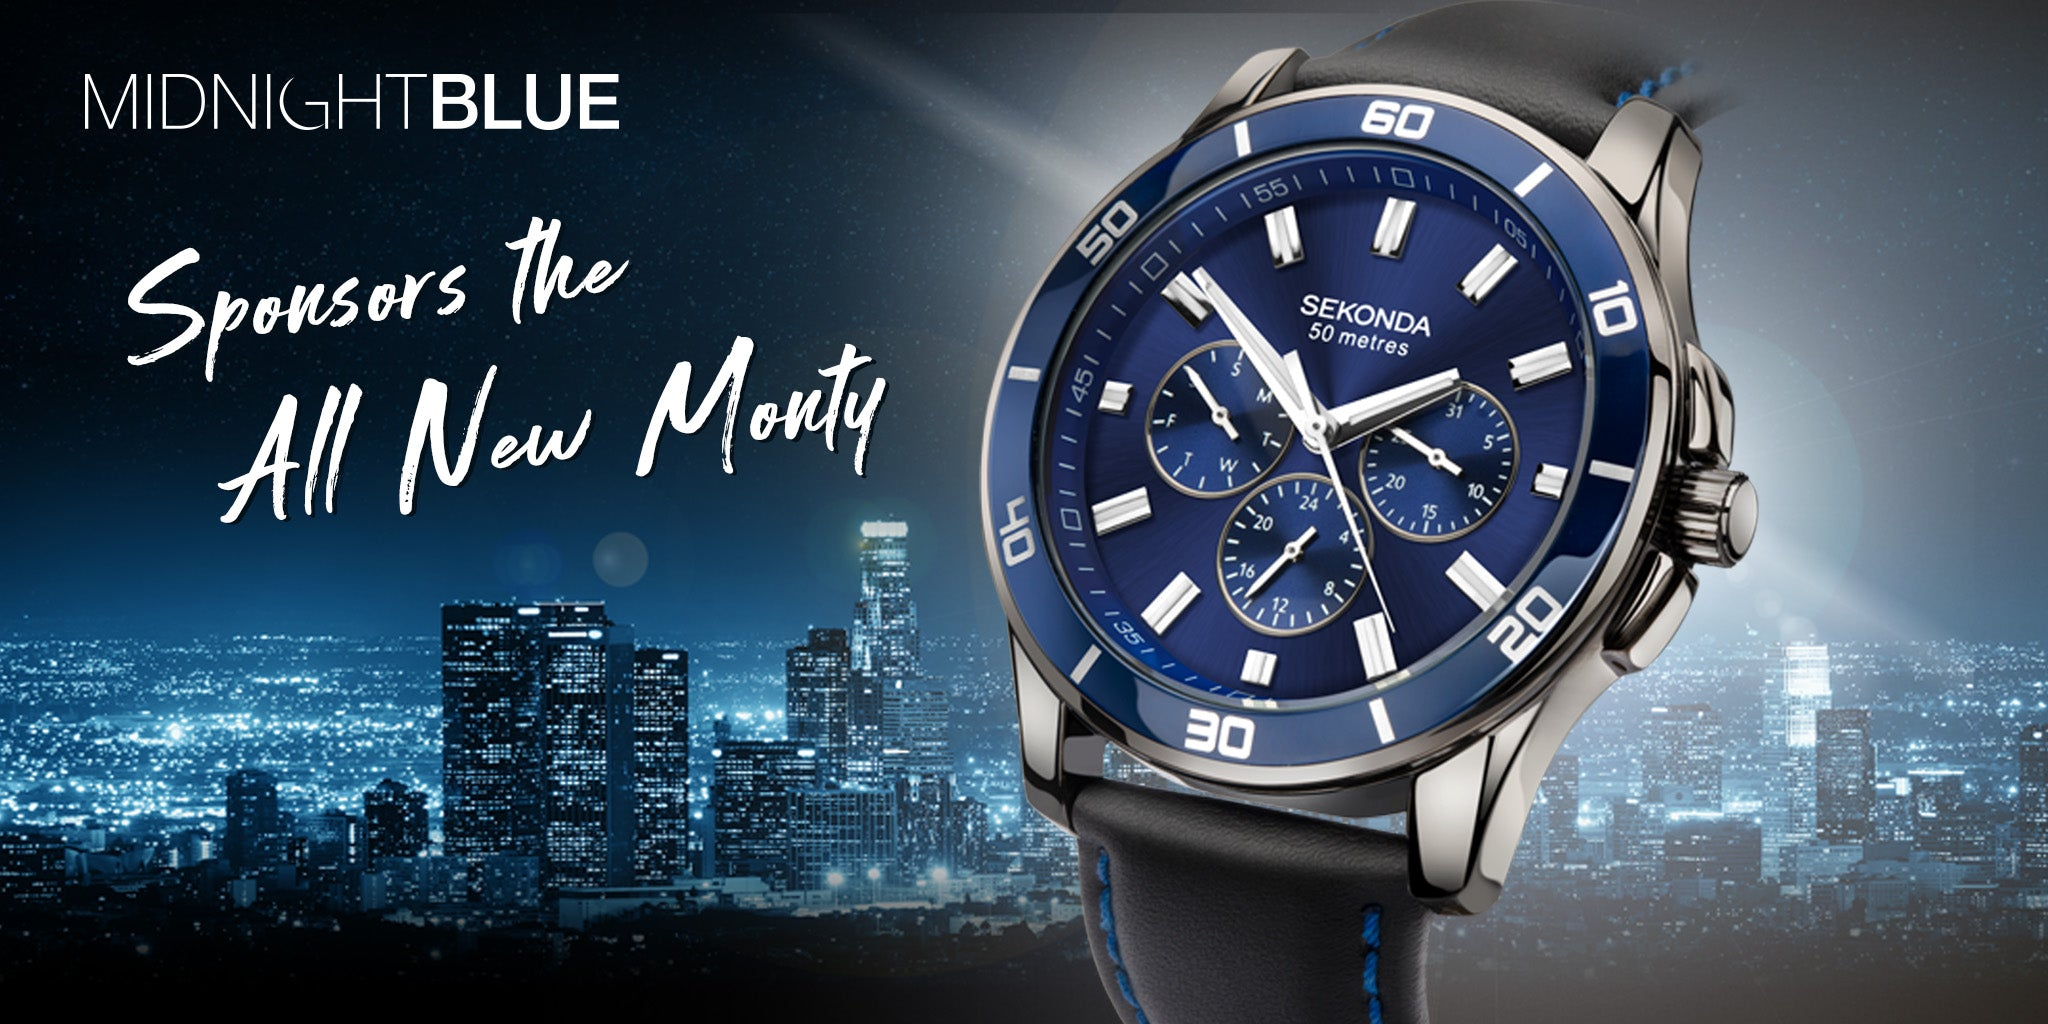 The All New Monty sponsored by Sekonda Midnight Blue 1634